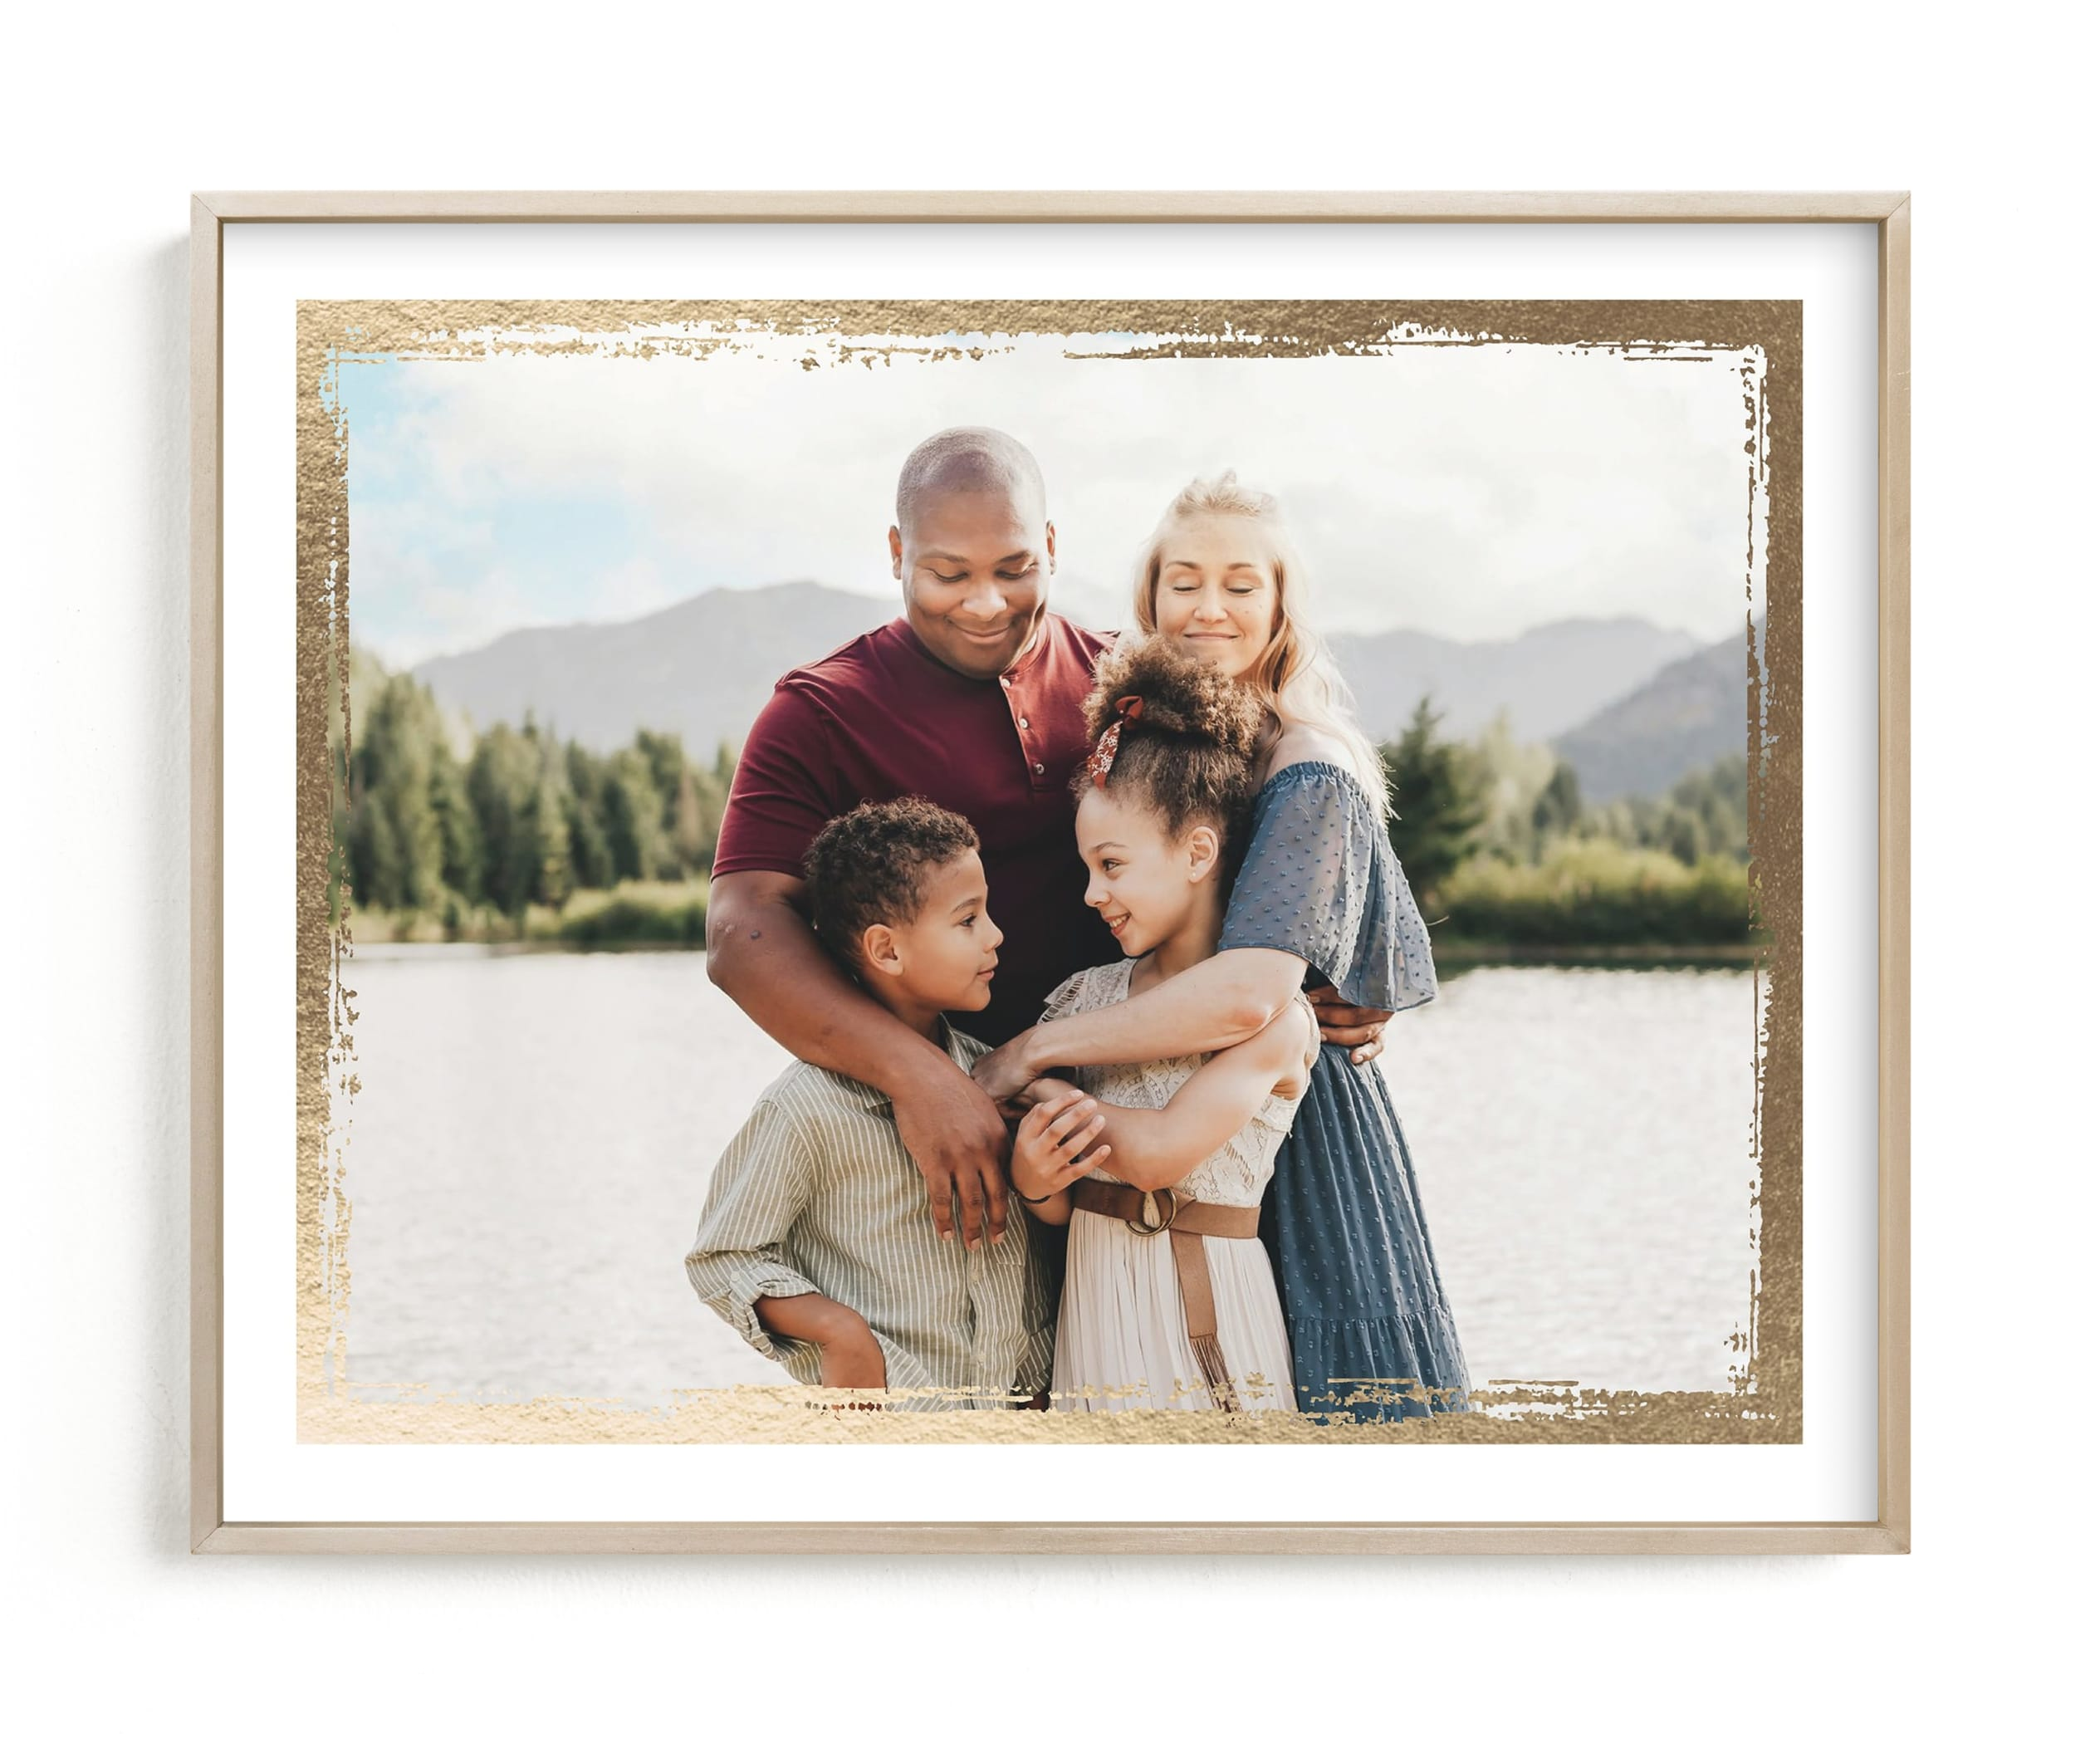 Rustic Frame Foil Pressed Photo Art Print